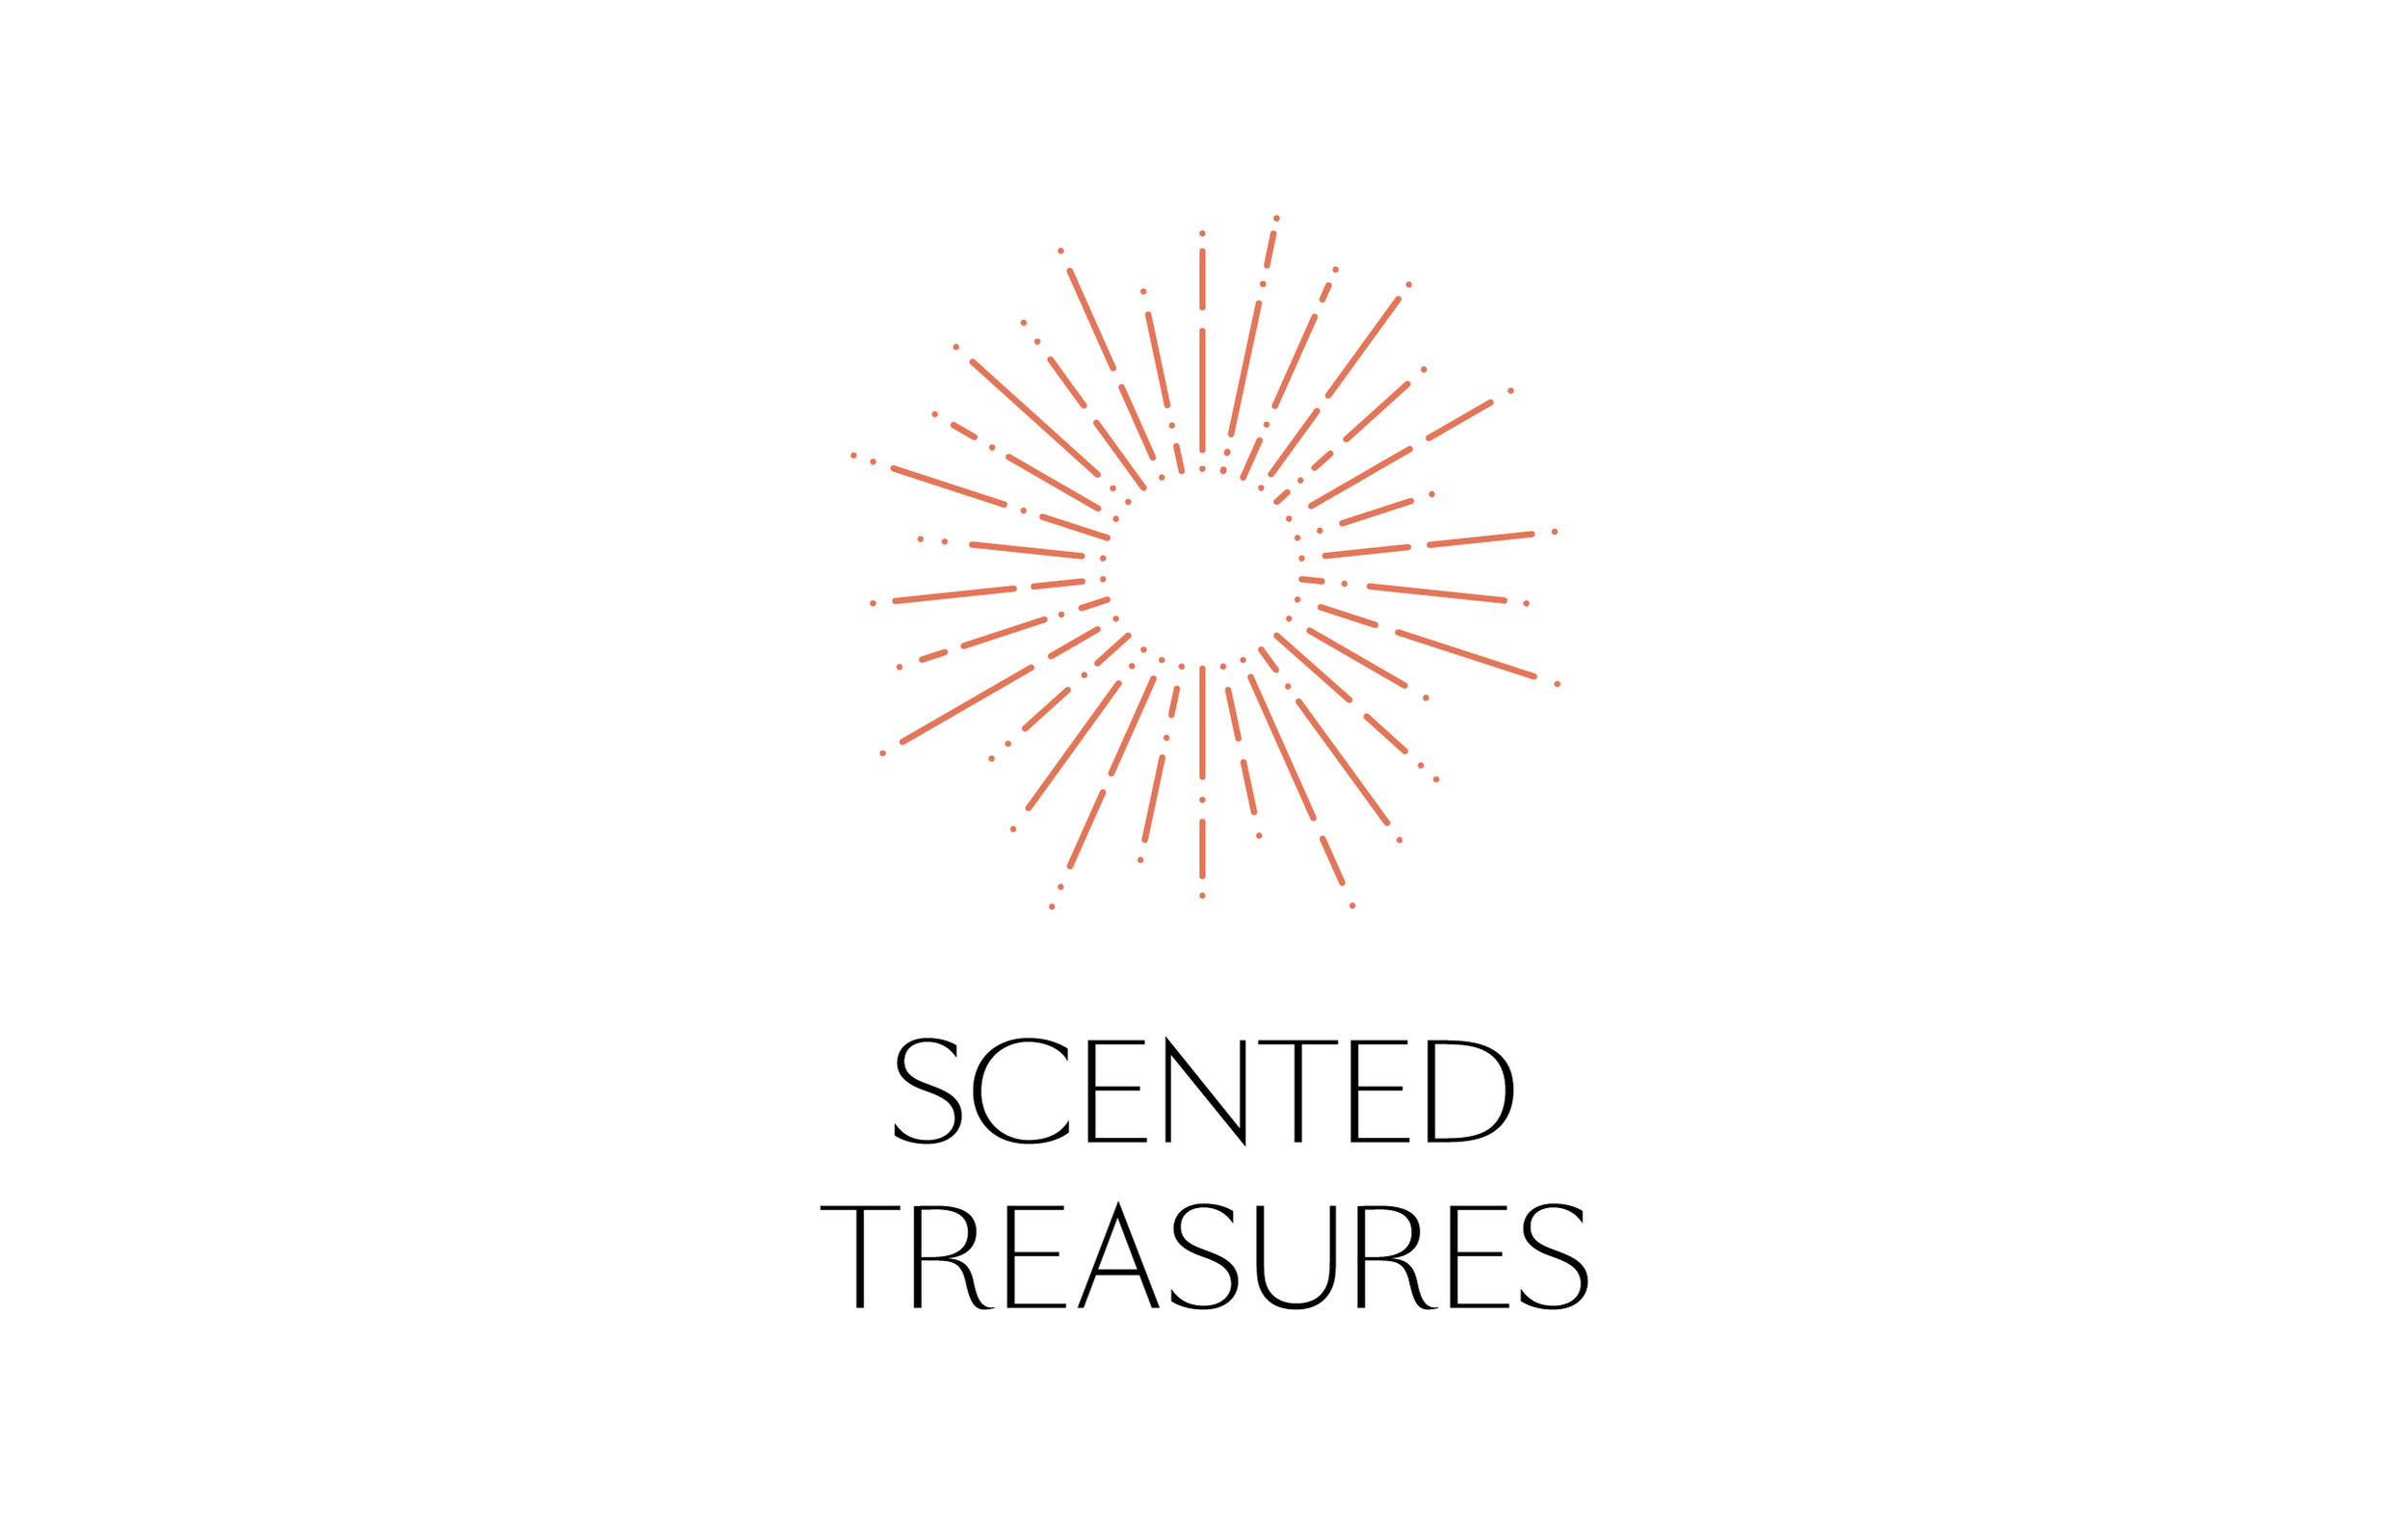 logos_scented-treasures-white.jpg